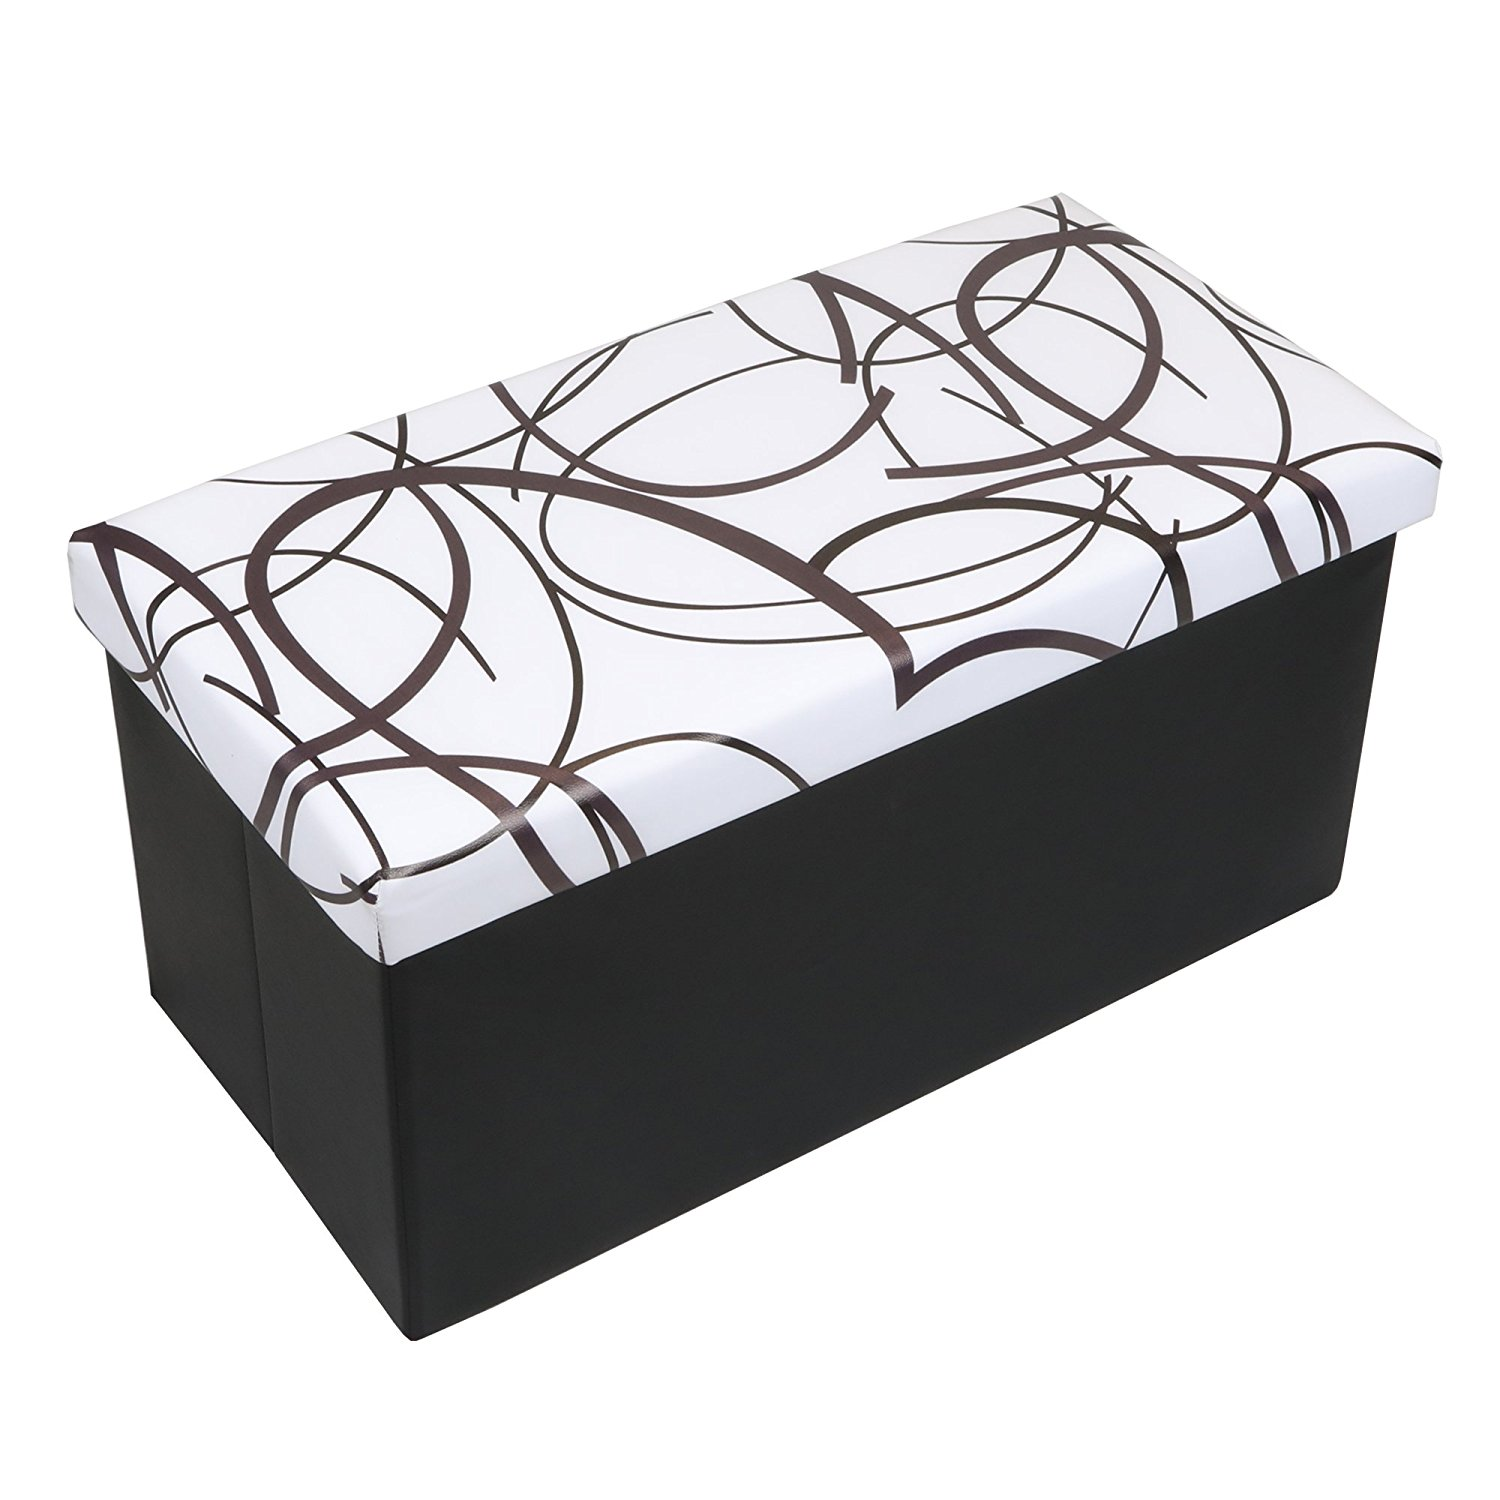 Otto & Ben 30 Inch Swirl Design Ottoman Storage Bench, Multiple Colors